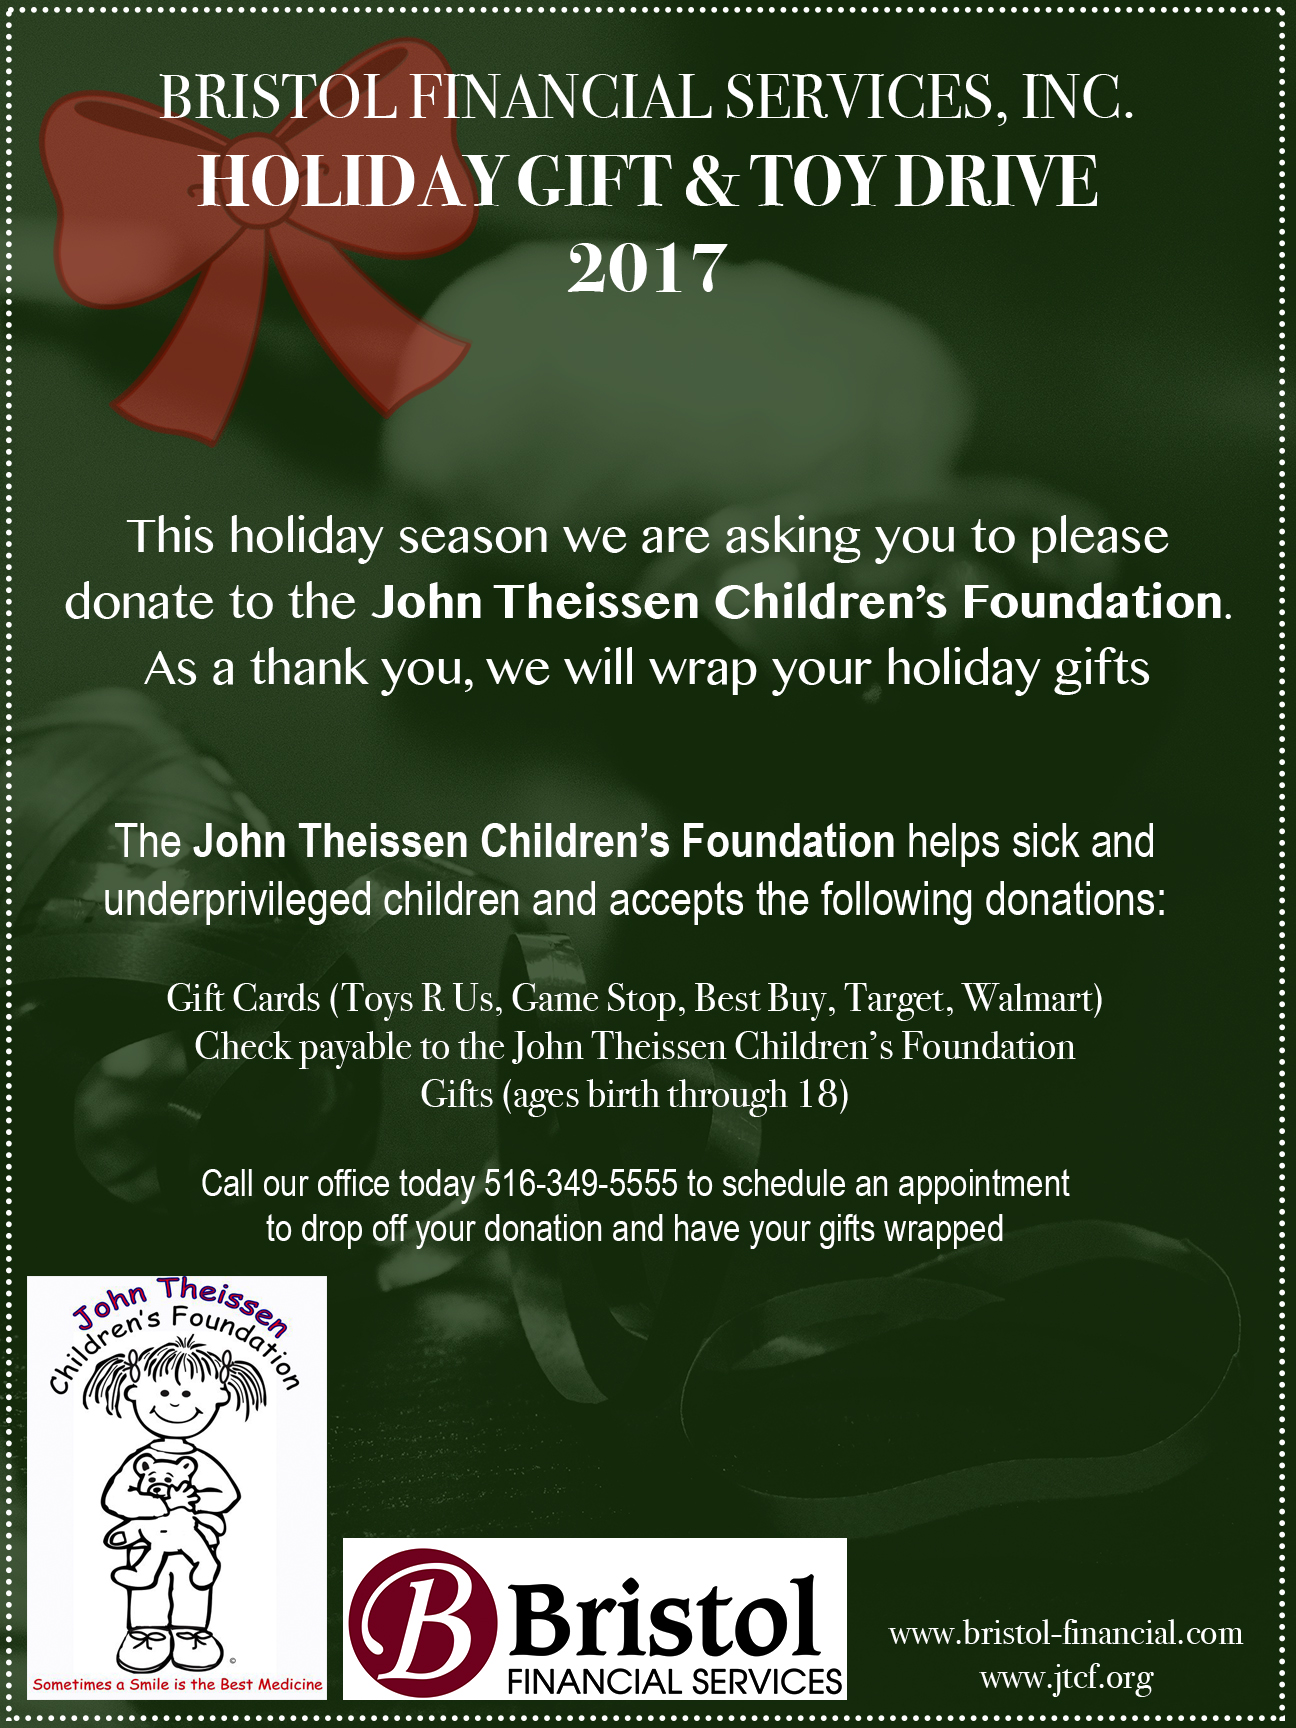 Holiday Gift and Toy Drive 2017 (Green).jpg